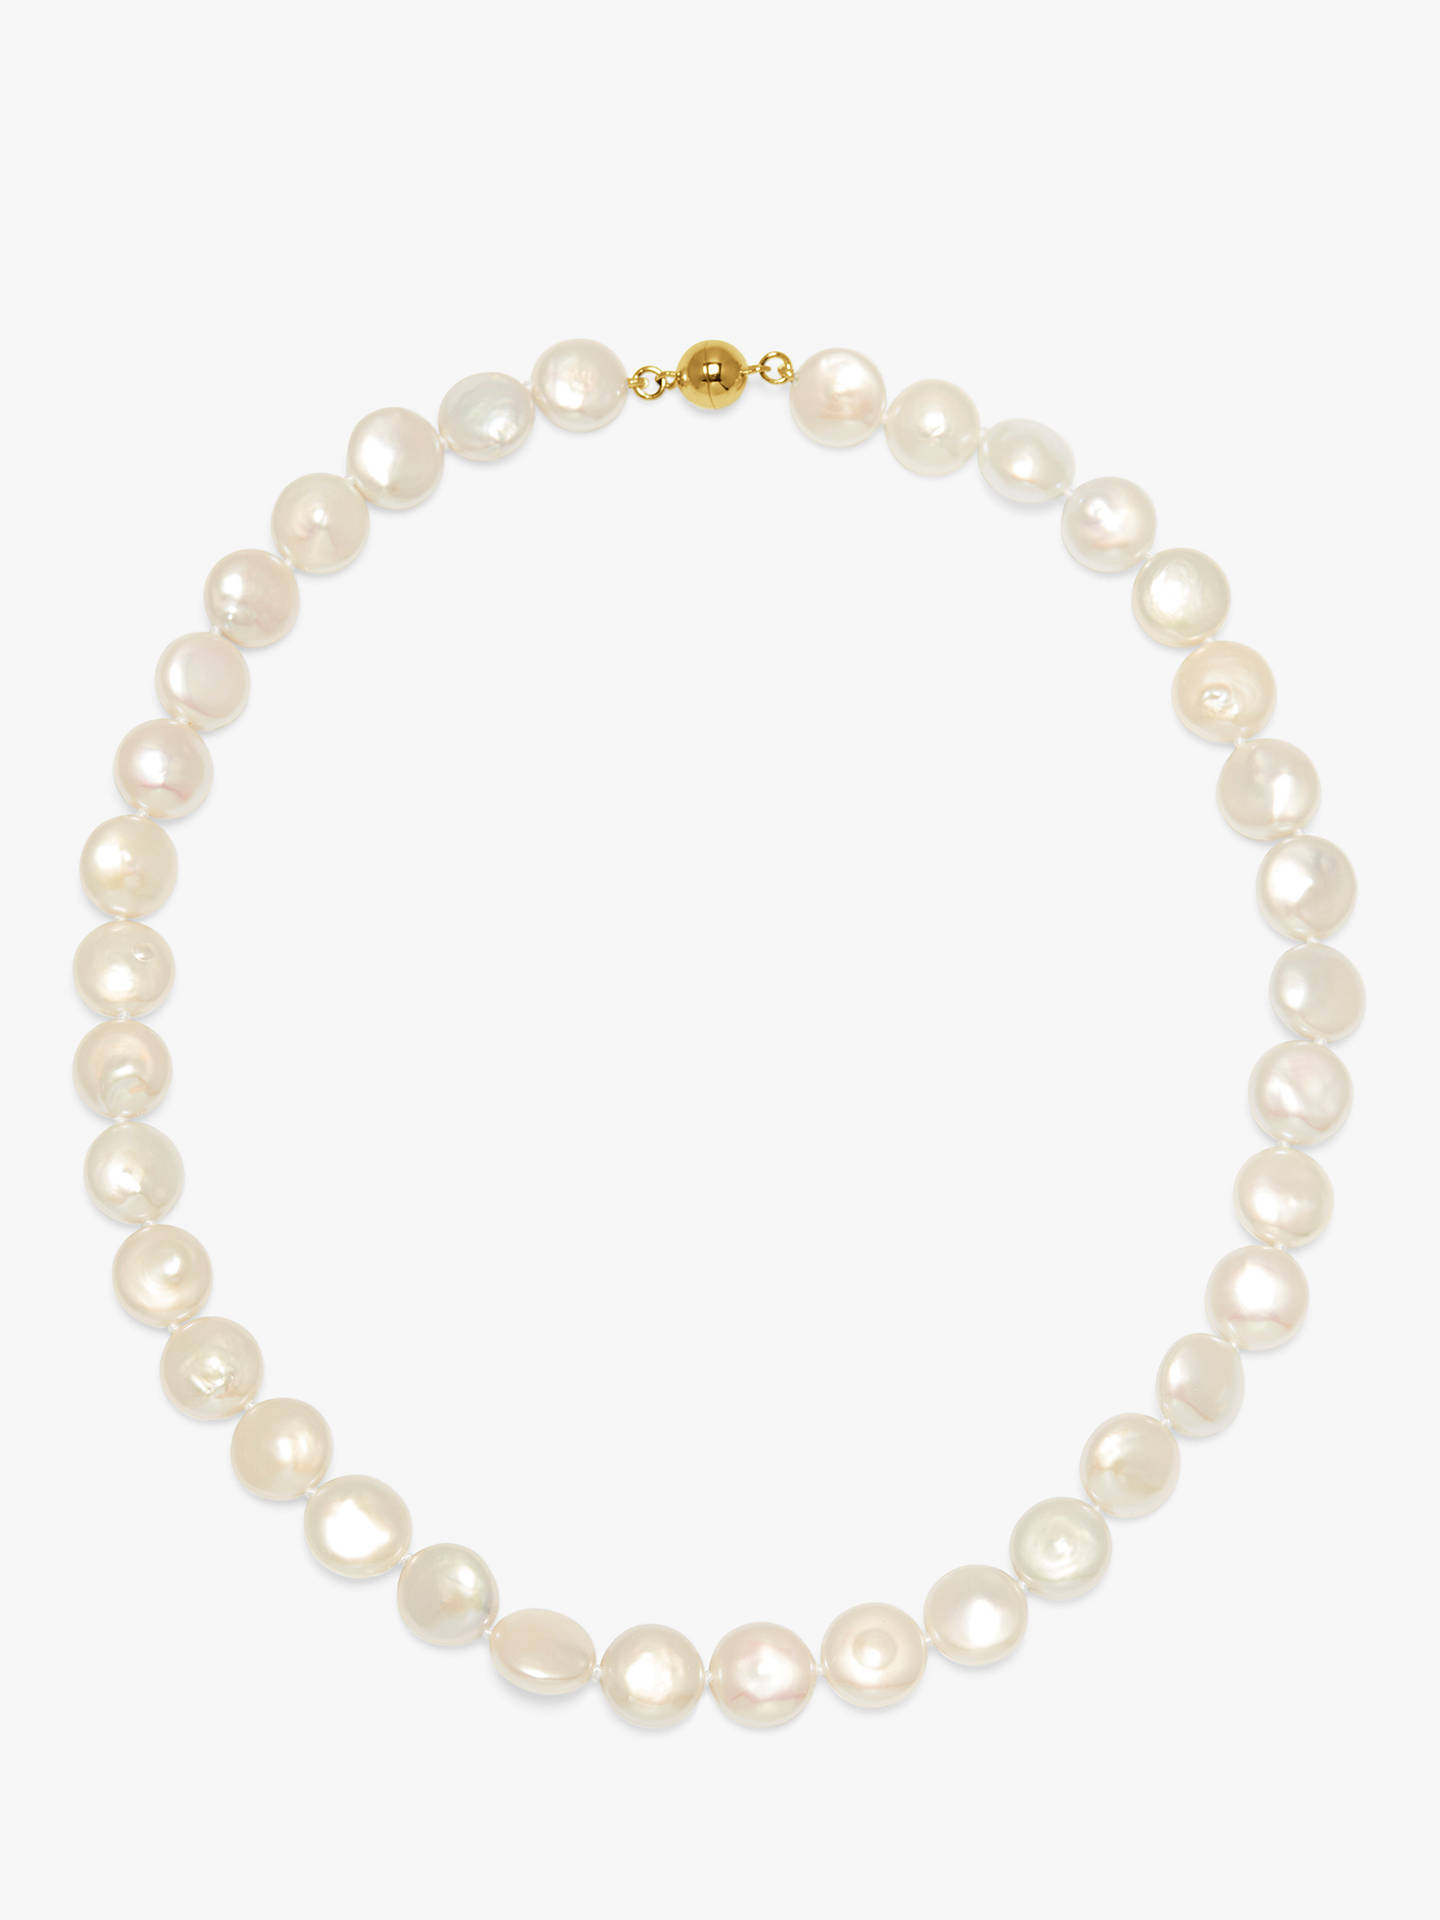 Buy A B Davis 9ct White Gold Coin Freshwater Pearl Necklace, White Online at johnlewis.com